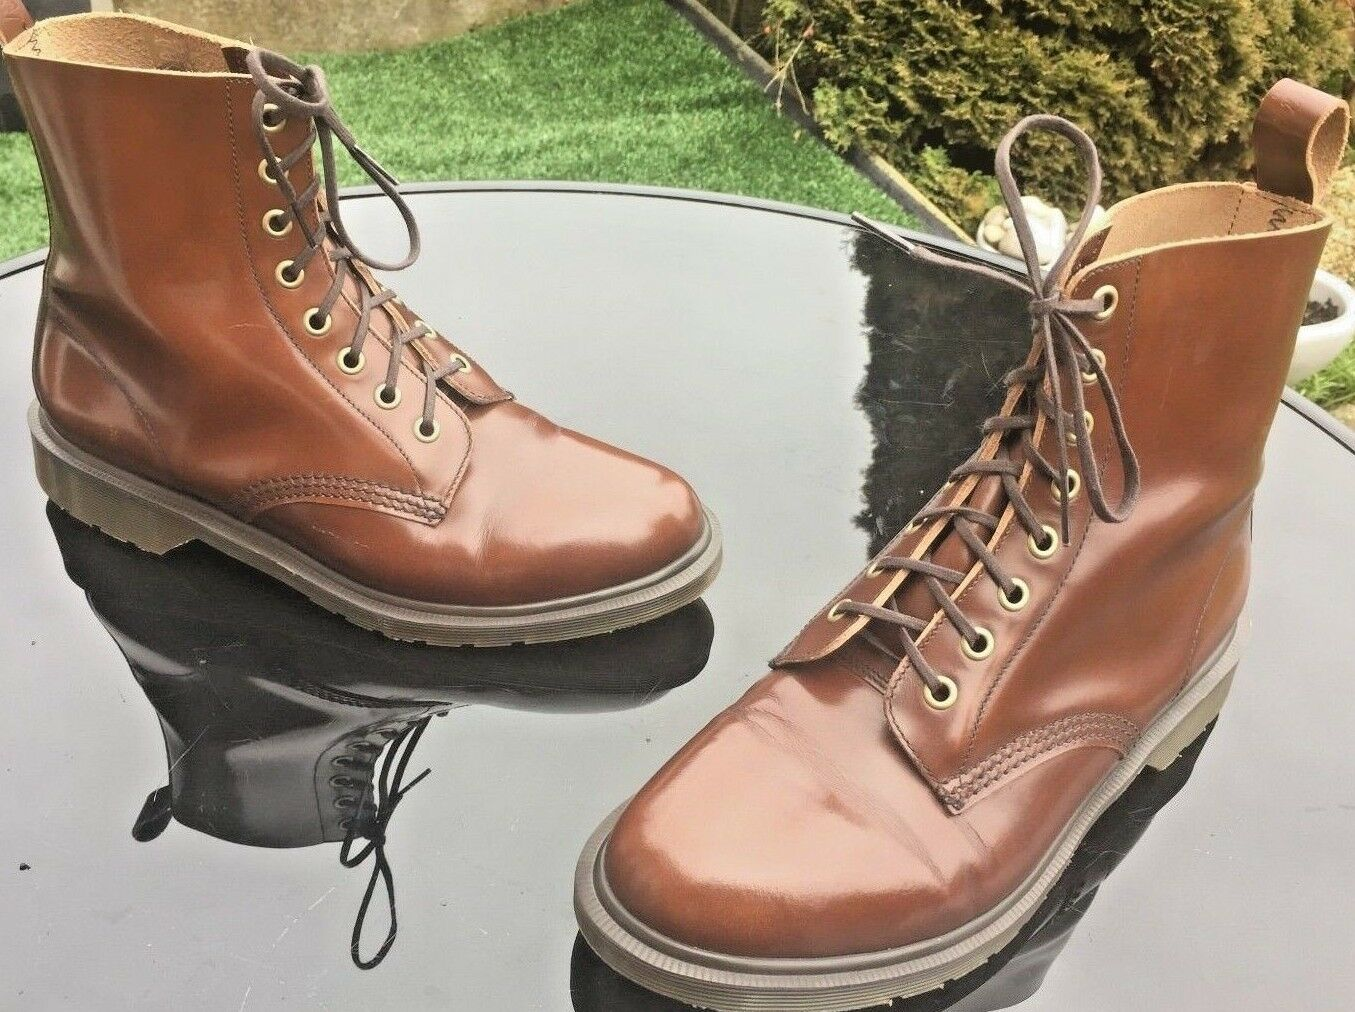 Dr Martens 1F66 brown leather boots UK 7 EU 41 England